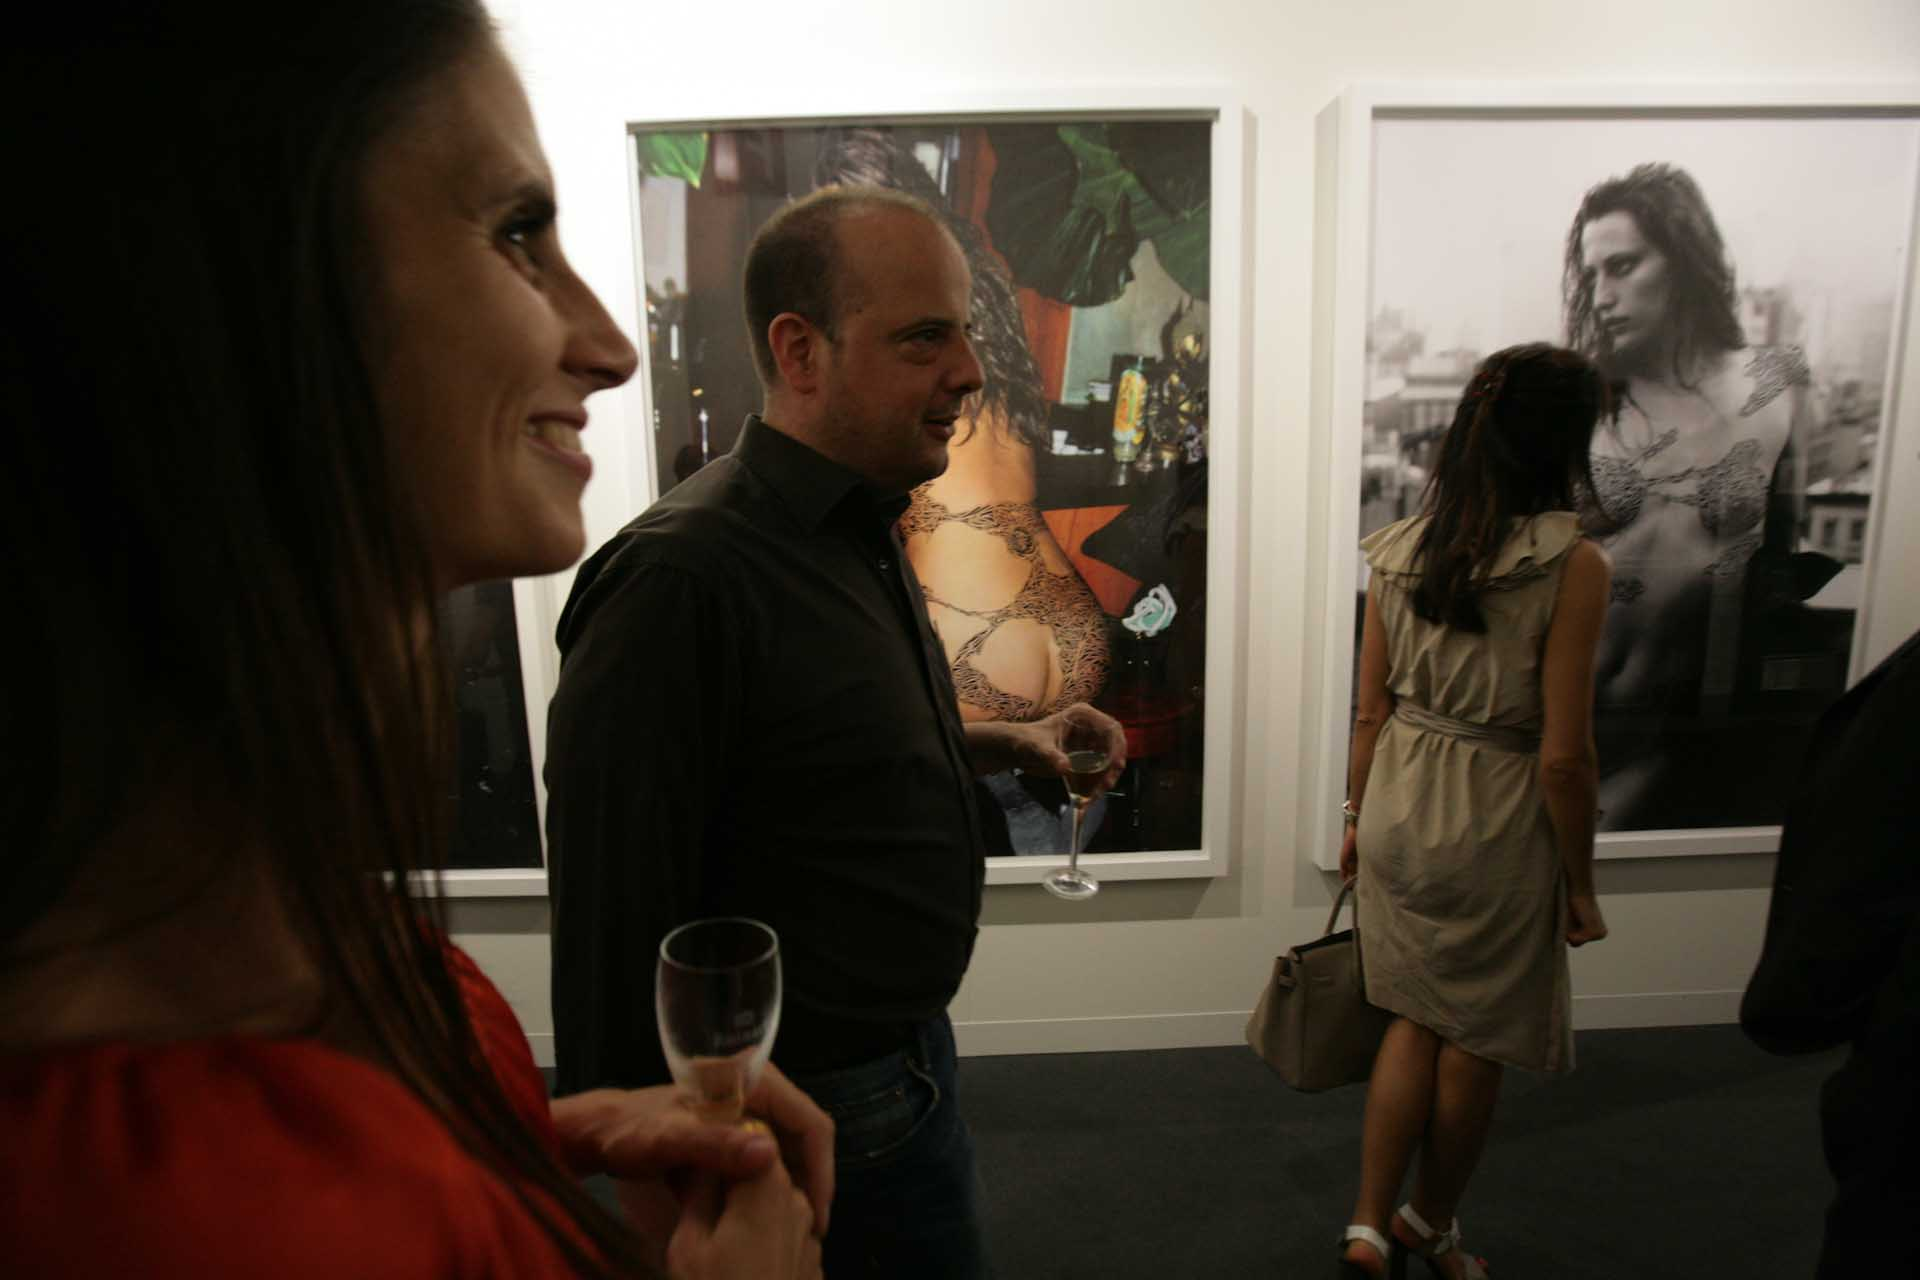 Vernissage audience at Art 42, 2011